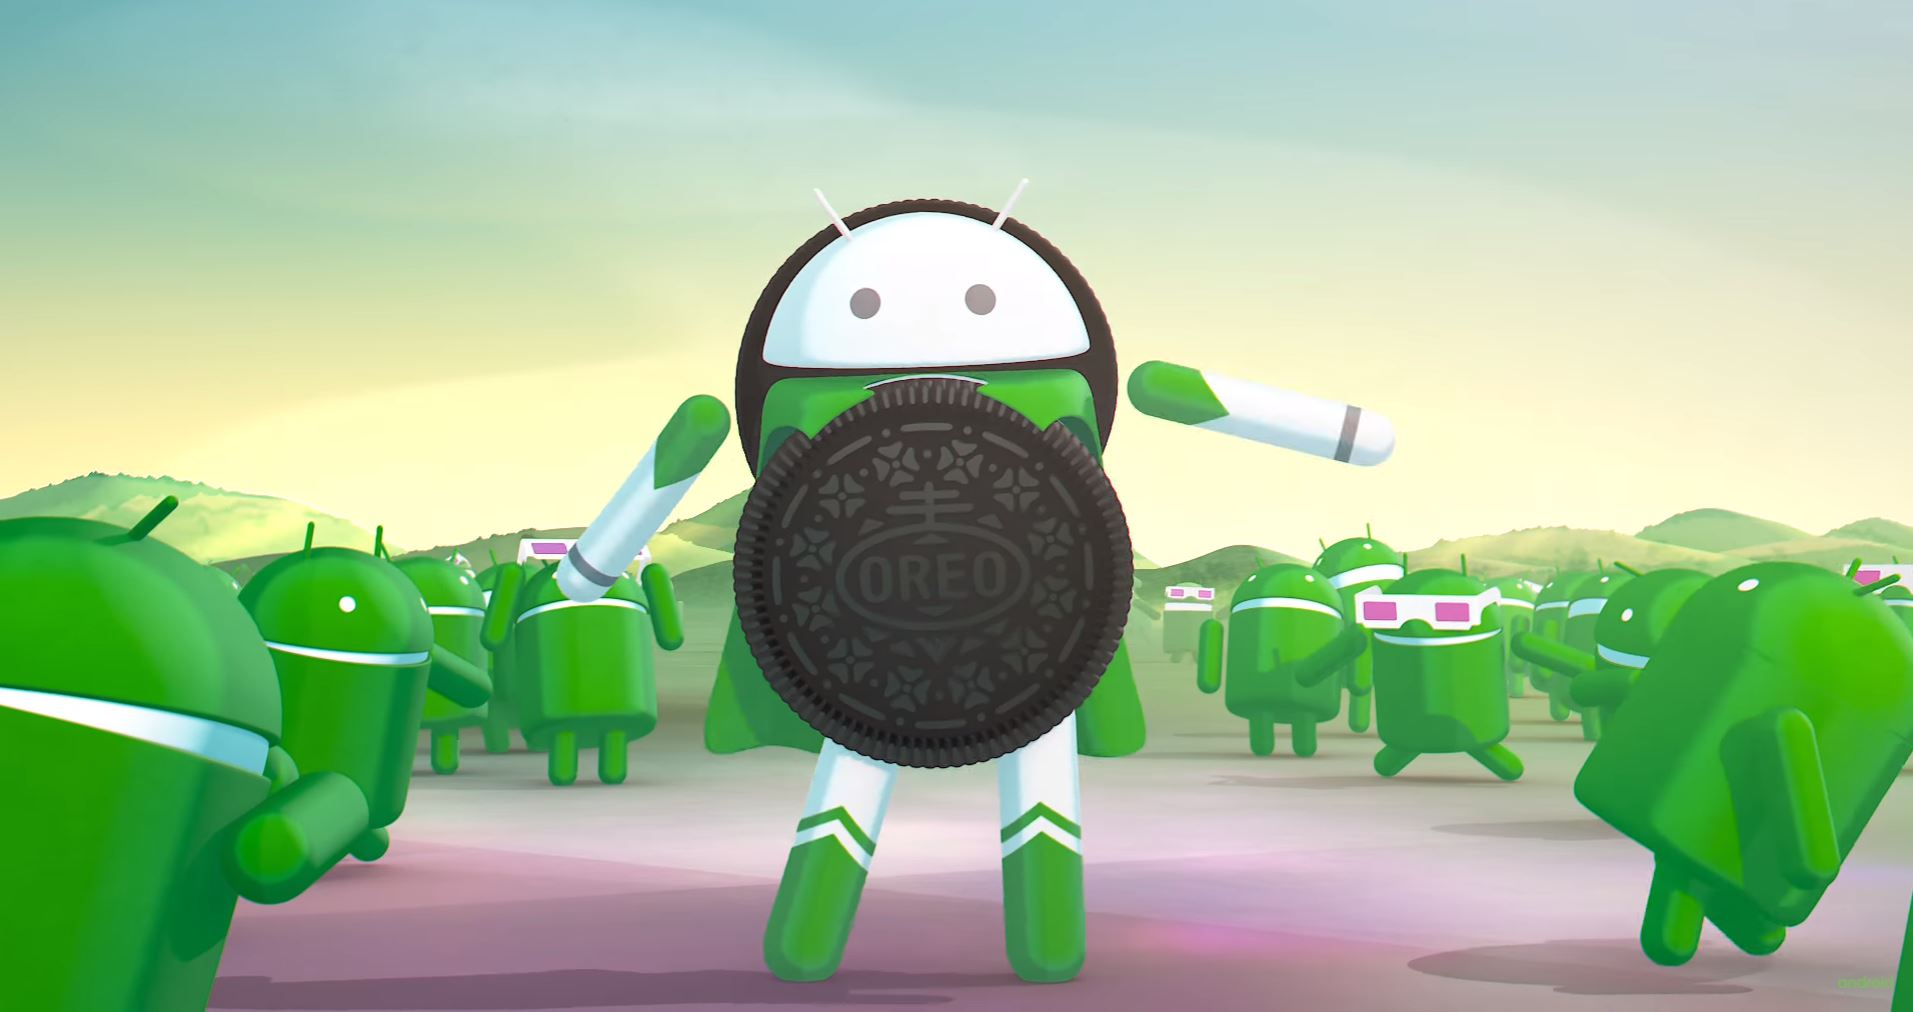 Still from Android Oreo introductory video.